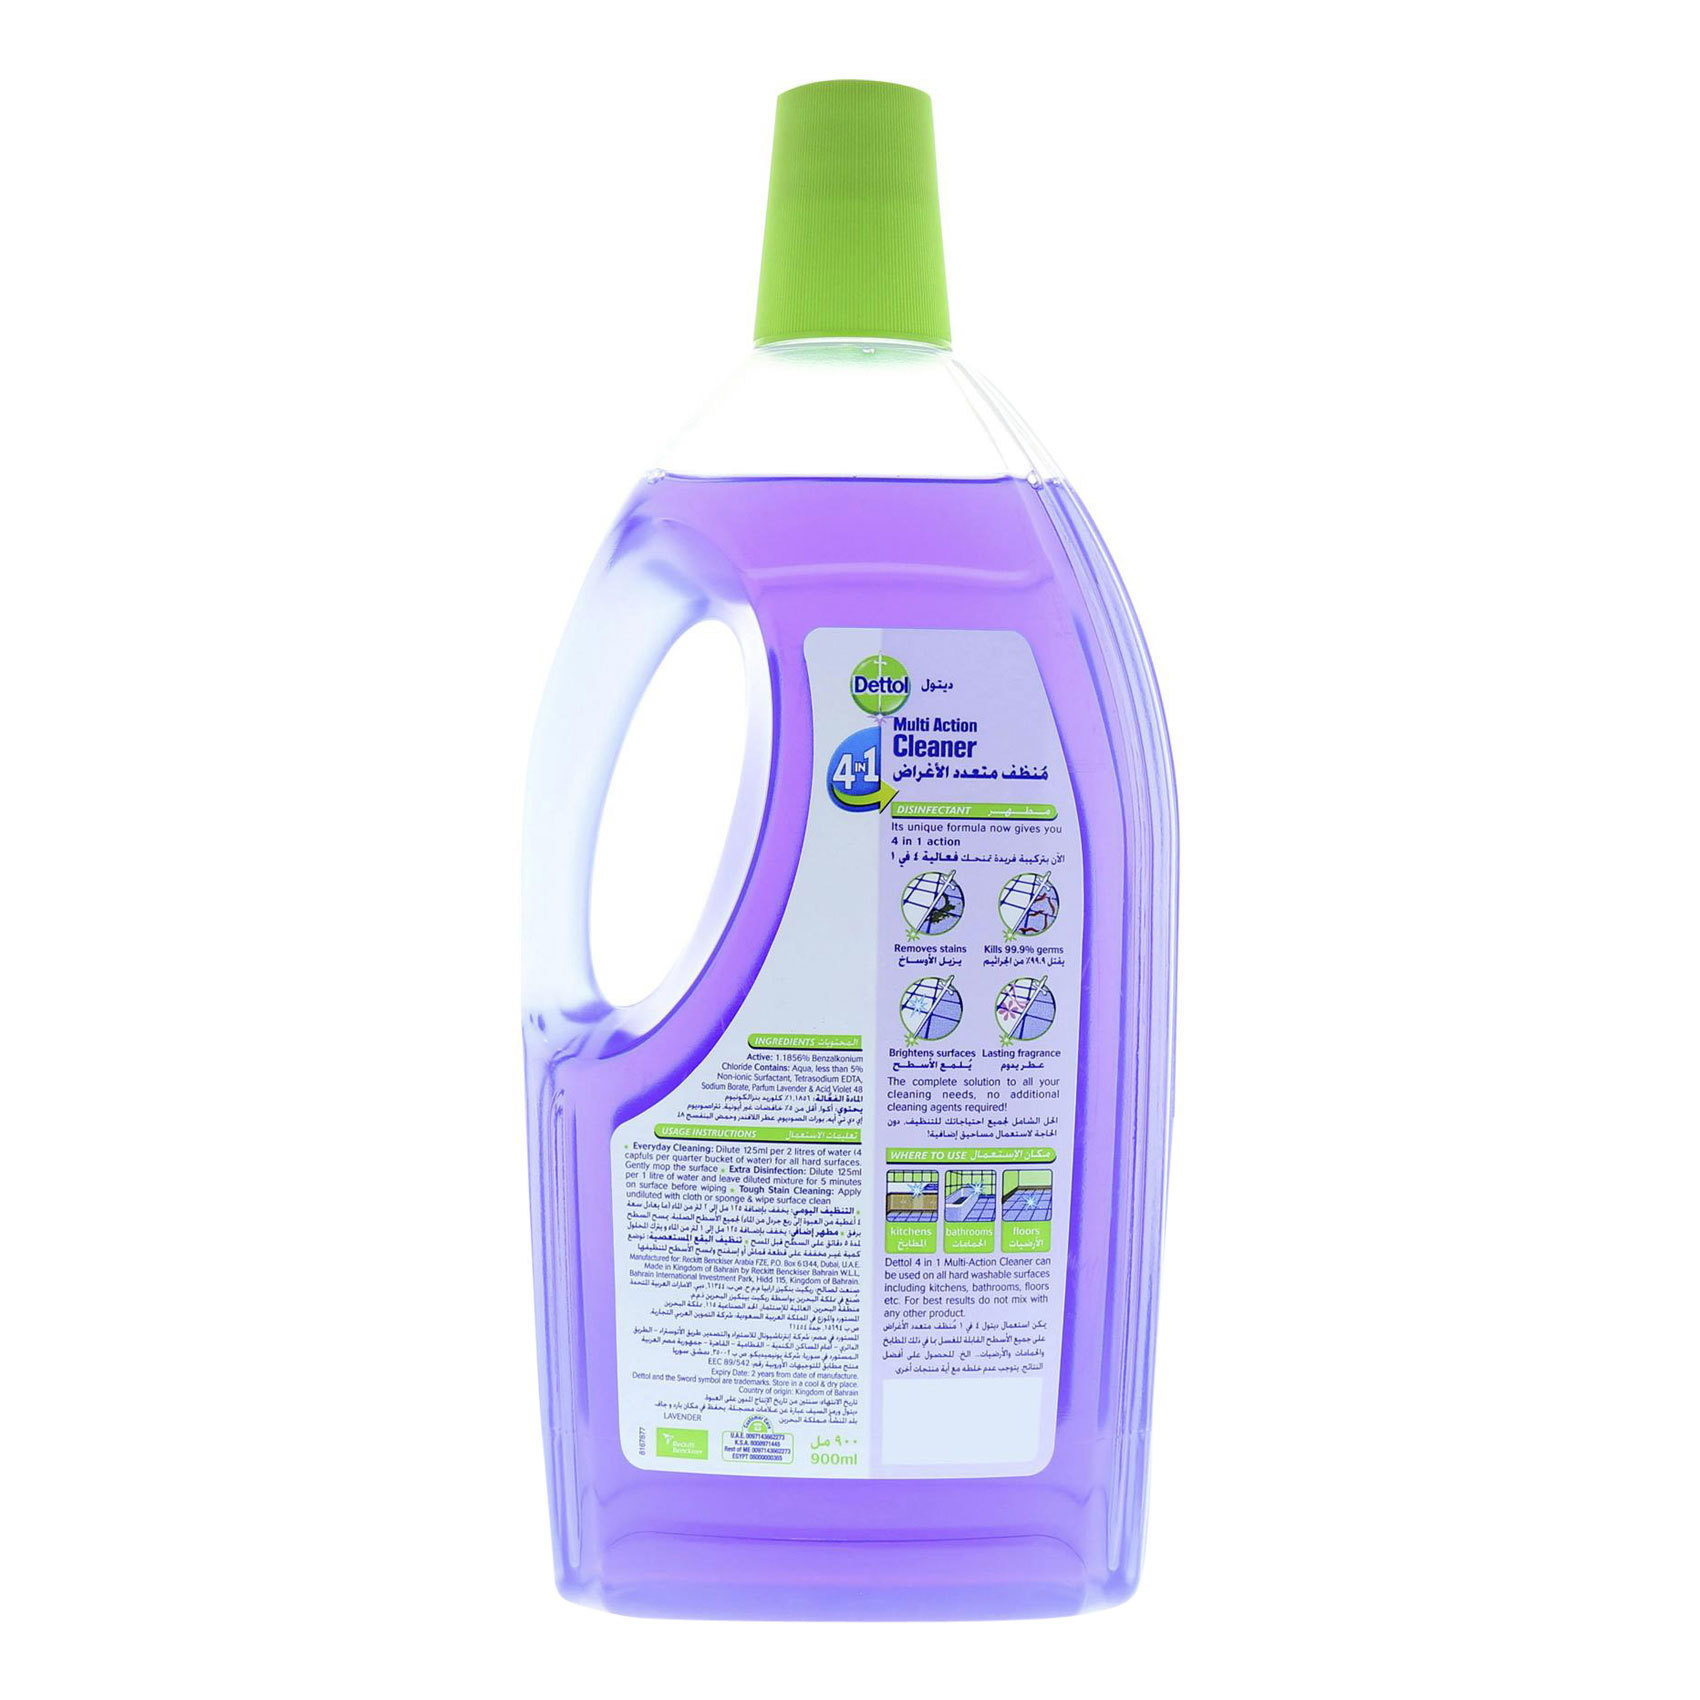 DETTOL MAC 4 IN 1 LAVENDER 900ML